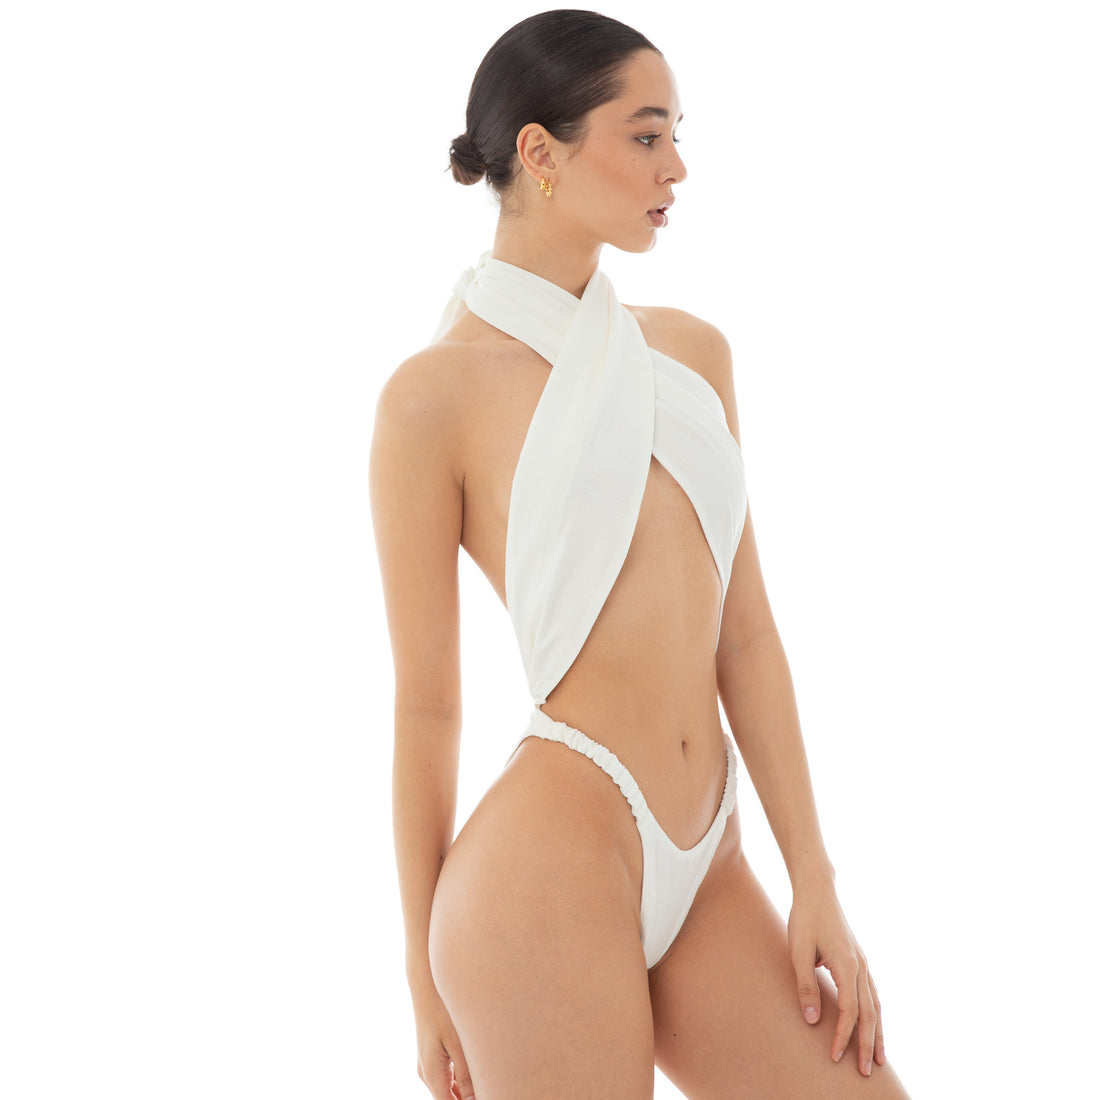 Are You Am I - Bam Bam Bodysuit